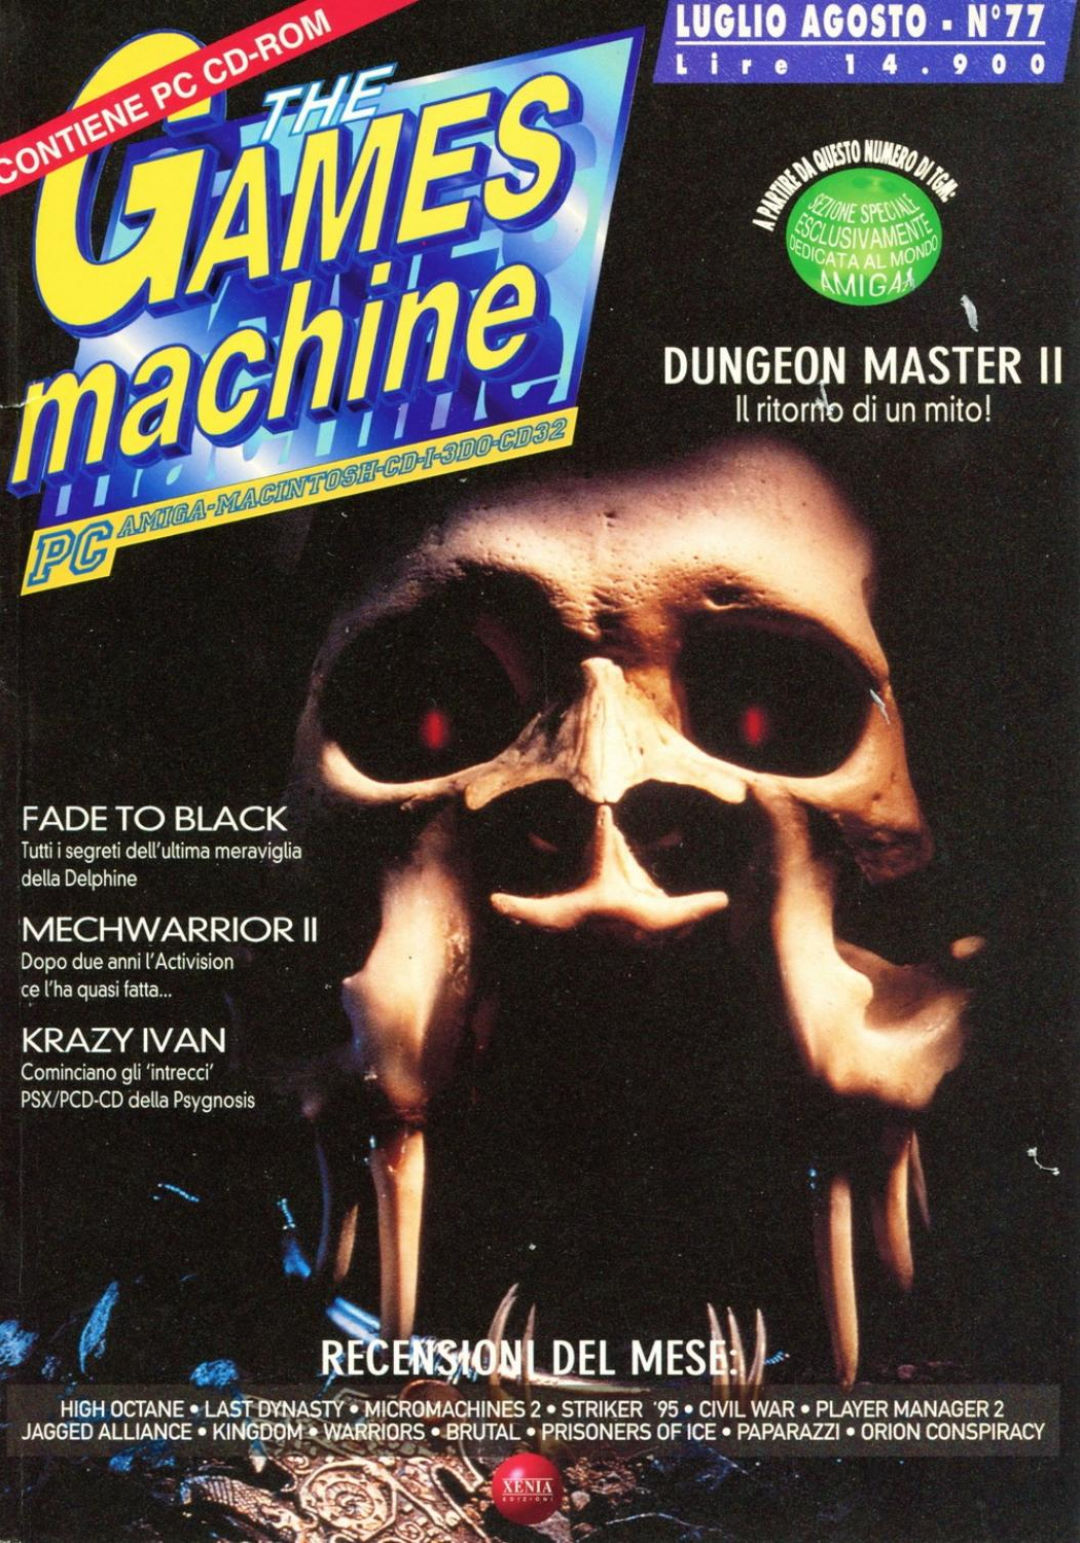 Dungeon Master II for PC Cover published in Italian magazine 'The Games Machine', Issue #77 July-August 1995, Page -